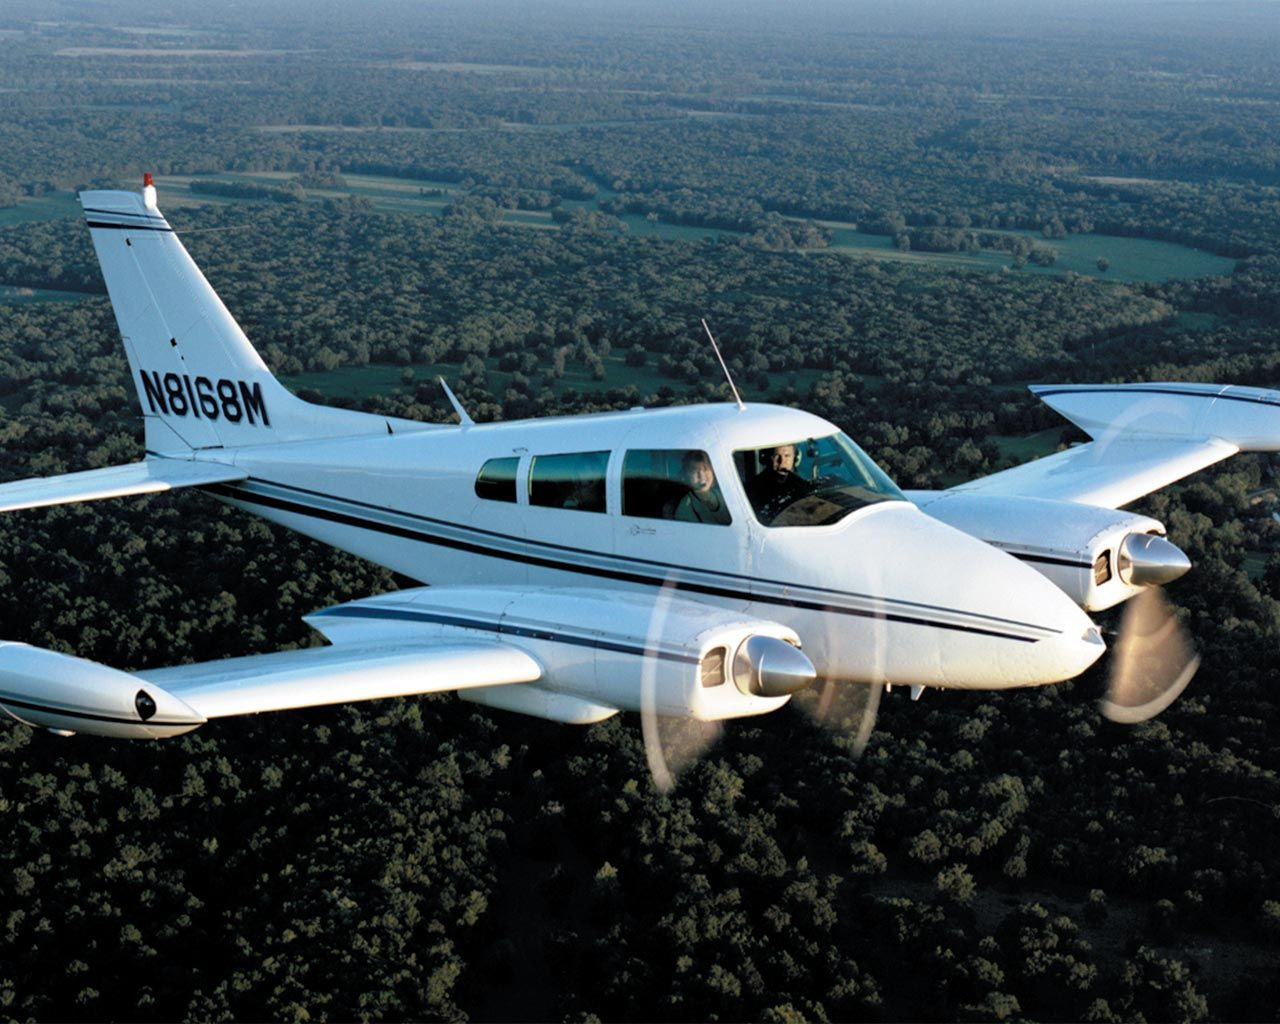 Cessna Plane Cessna 310 Looks Very Much Like Our Plane My Style Health